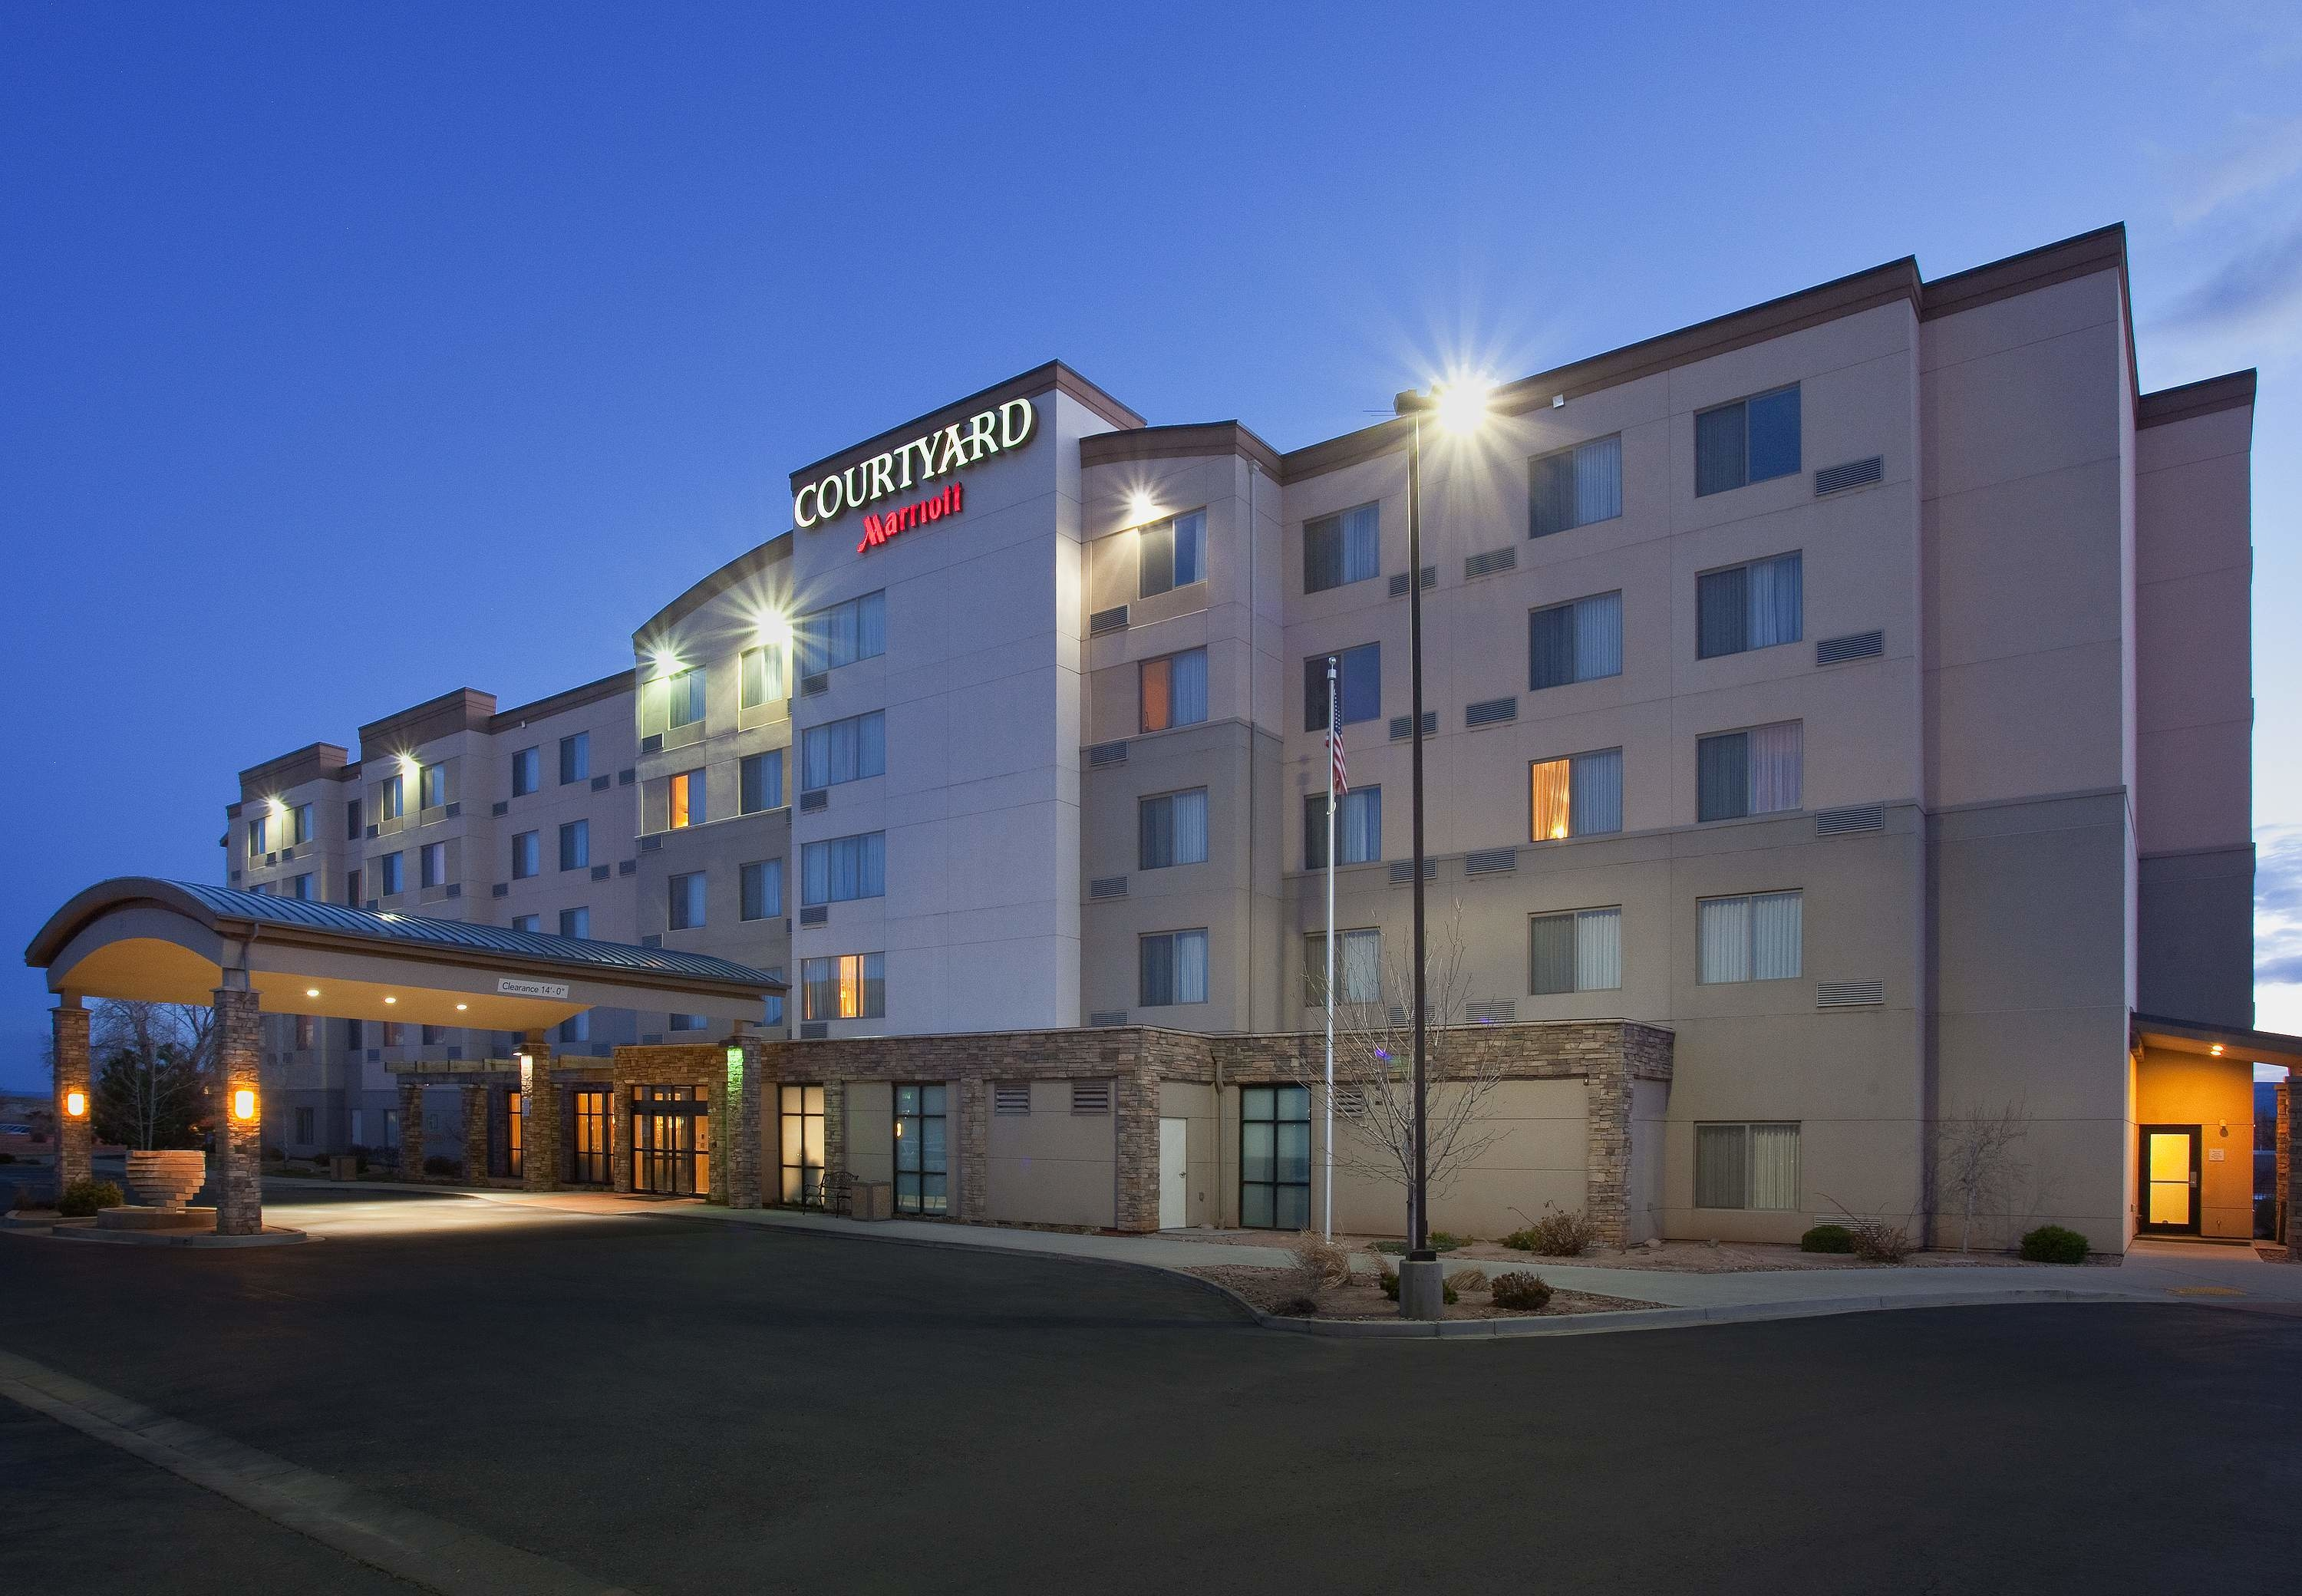 Courtyard by Marriott Grand Junction image 20